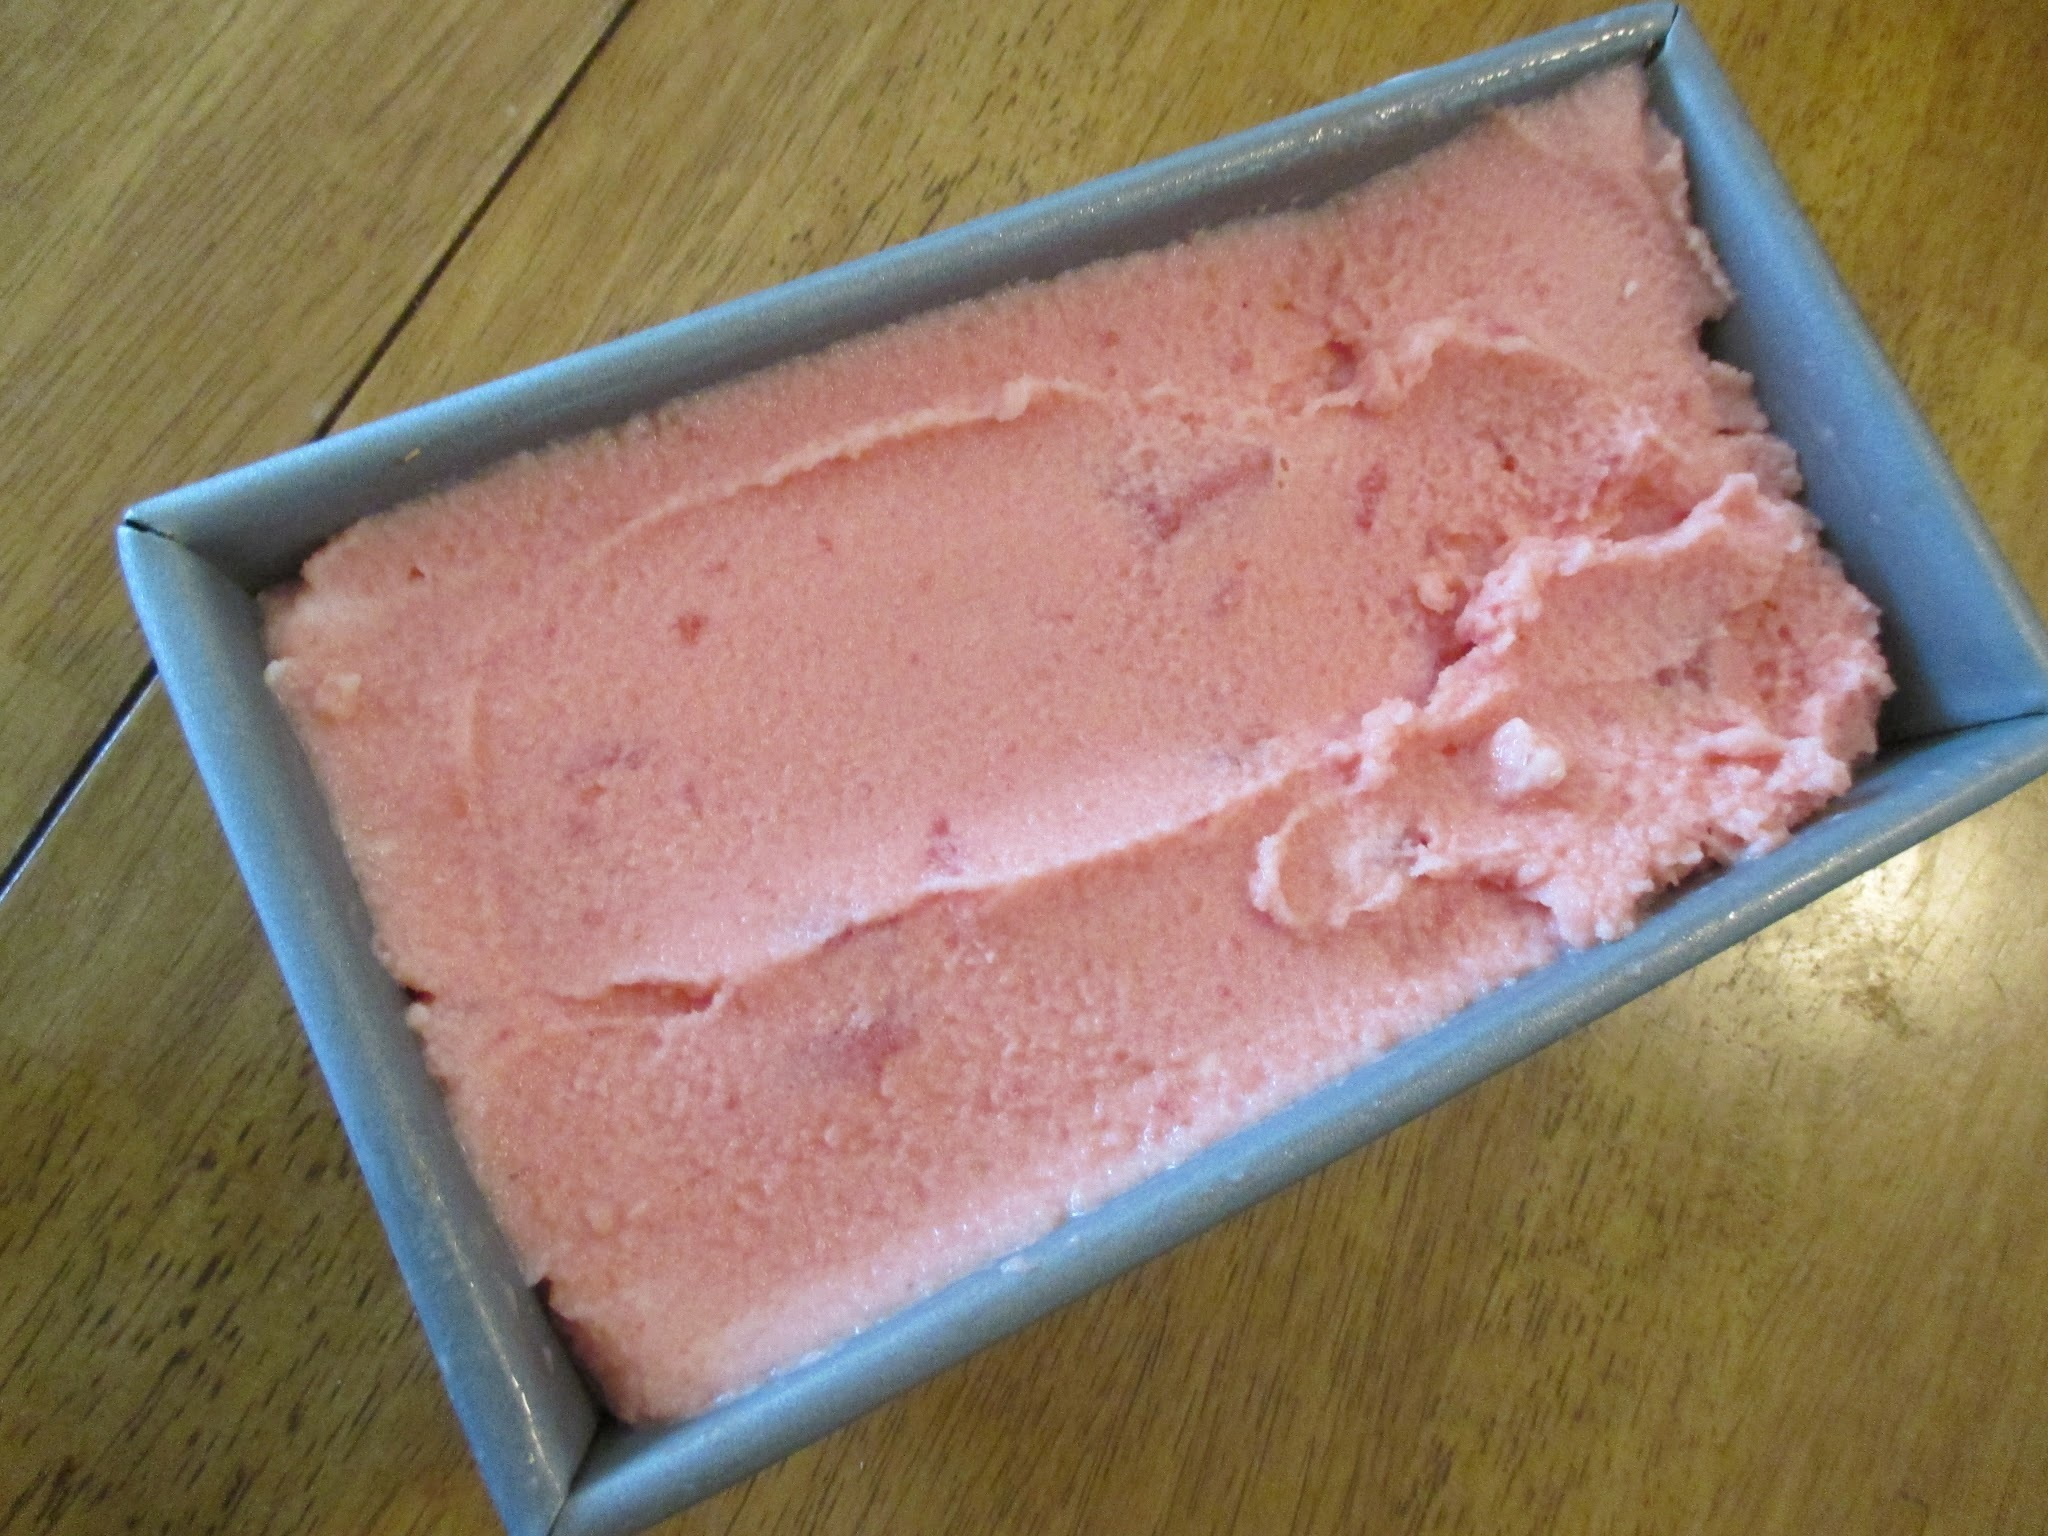 2 Ingredient Watermelon Sherbet